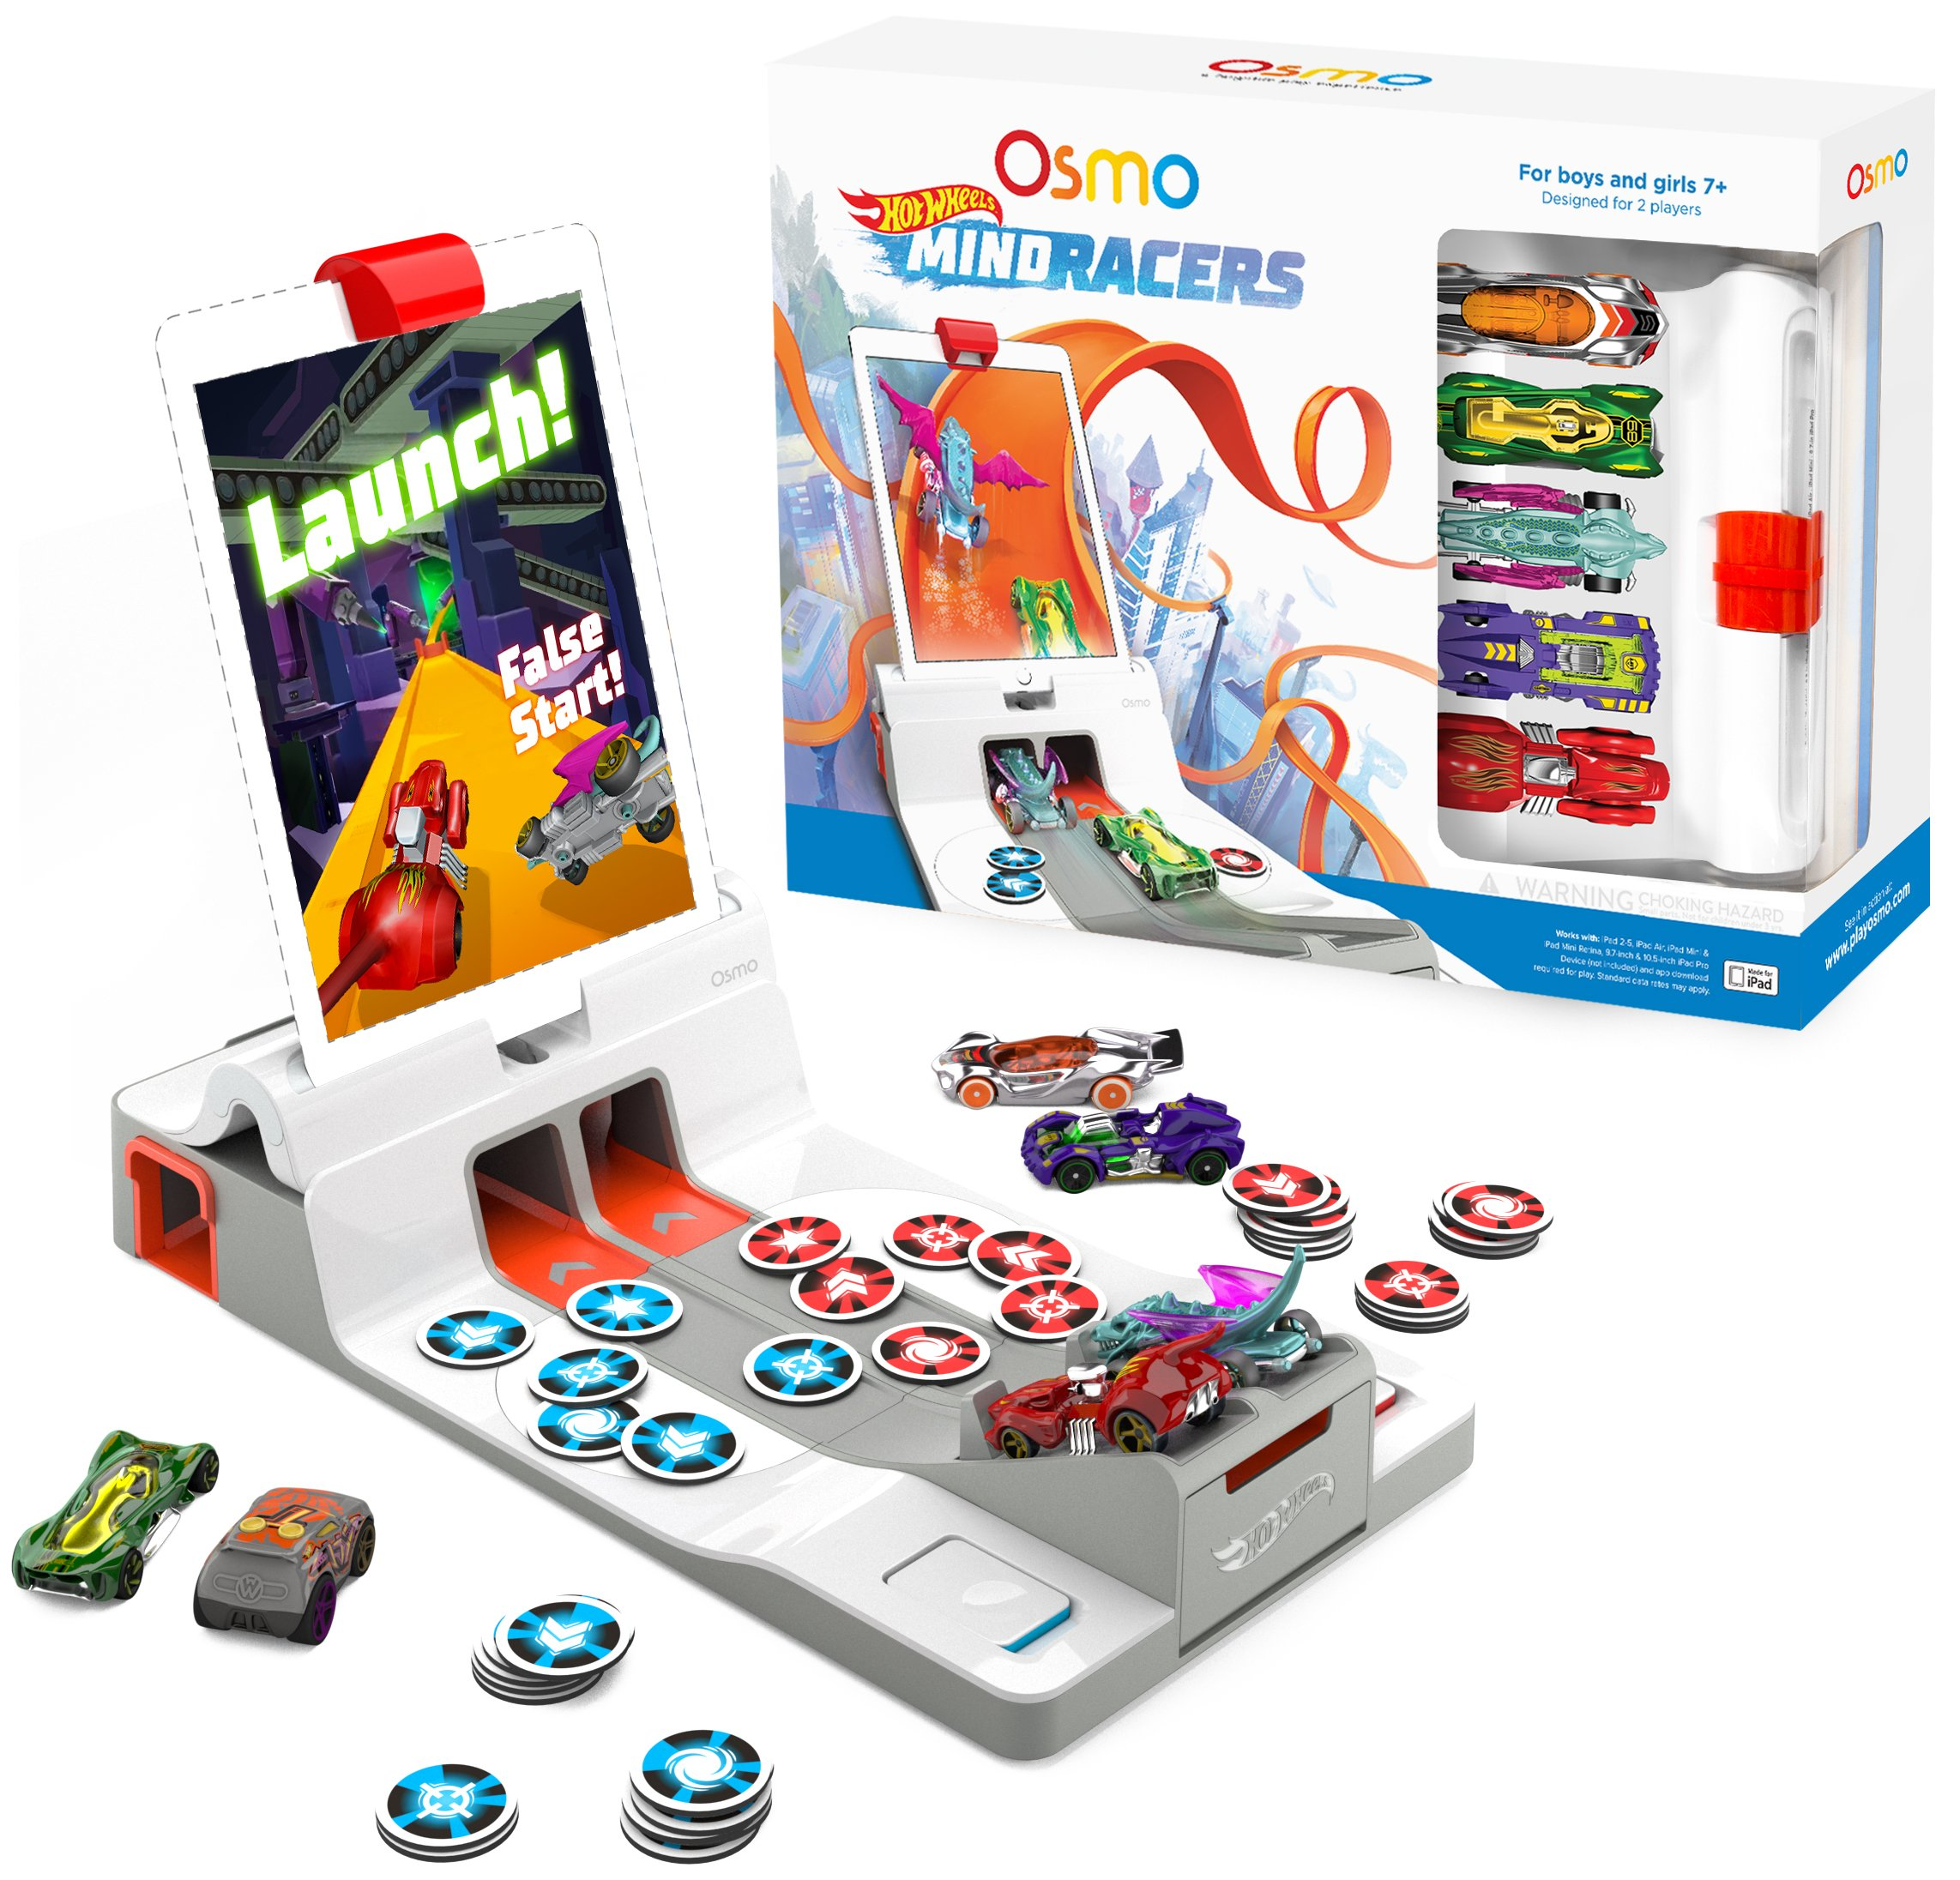 Osmo - Hot Wheels MindRacers Game Kit for iPad - Ages 7+ - Race a Real Hot Wheel On Screen - (Osmo iPad Base Included) by Osmo